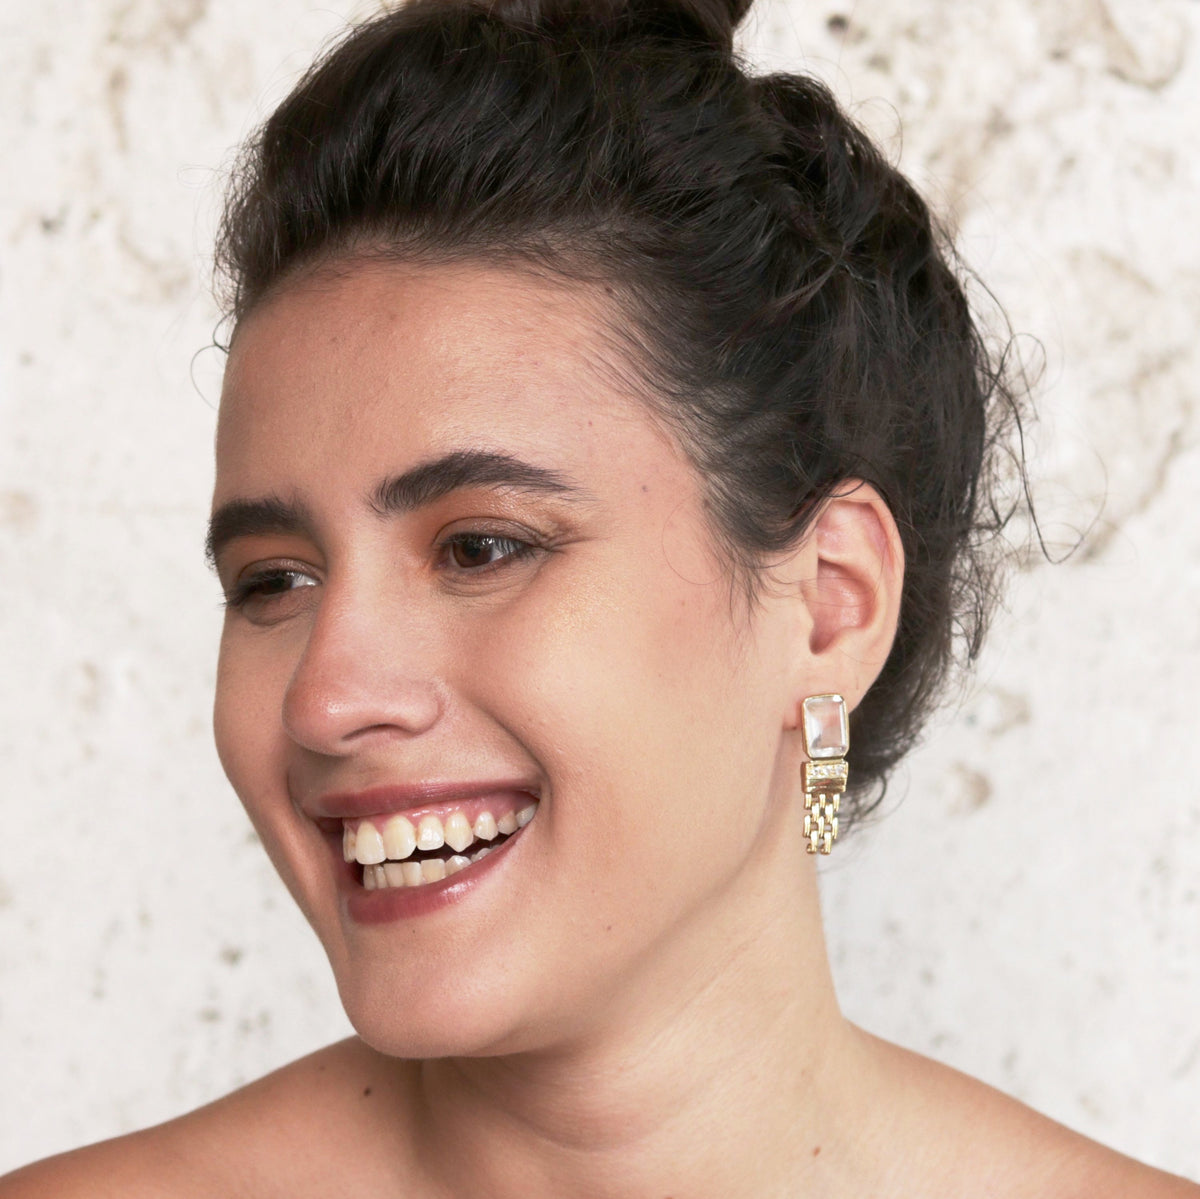 Barcelona Shainey stone earrings with gourmet chain